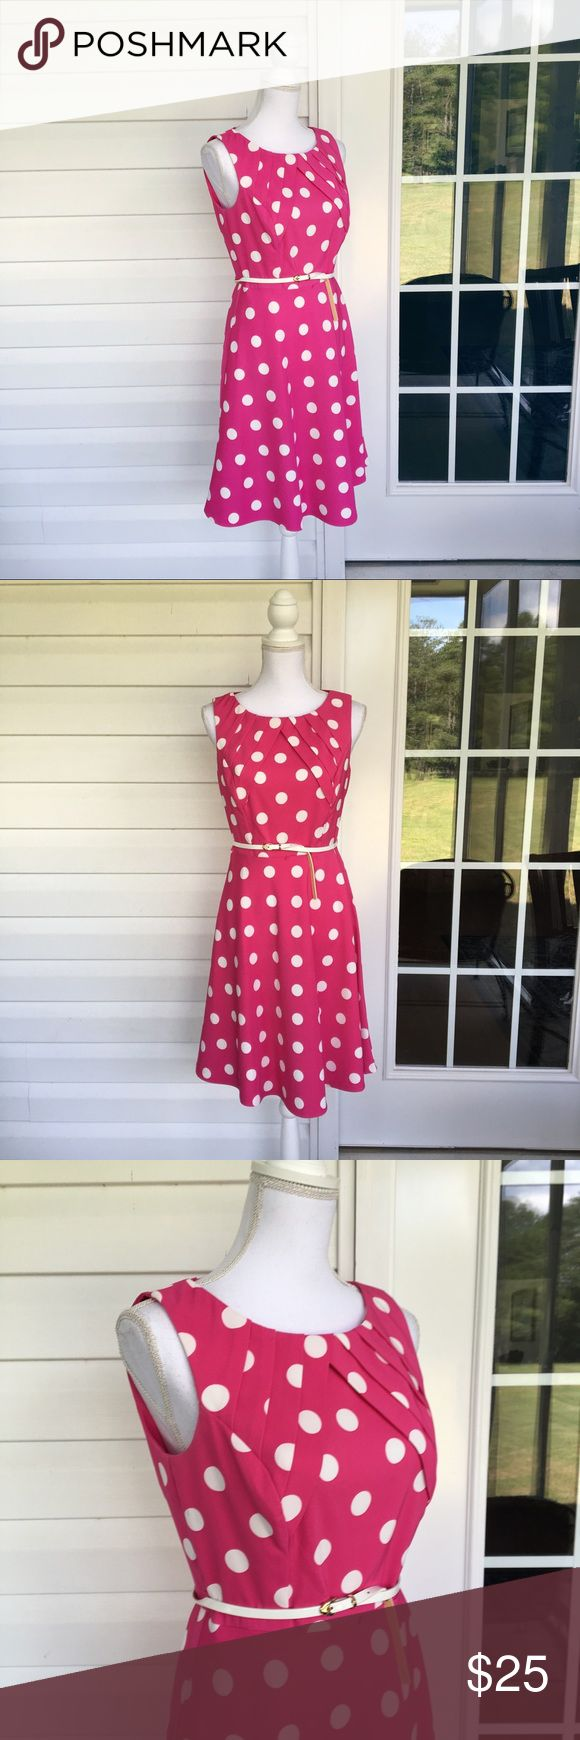 Dress Barn Collection Pink & White Polka Dot Dress With a flared skirt, this polkadot dress is ideal to wear on your next night out. Made from a poly/spandex blend, this dress is a lovely piece. In good condition. Approximate measurments lying flat:  18' bust, 38.5' length 30319 Dress Barn Dresses Midi